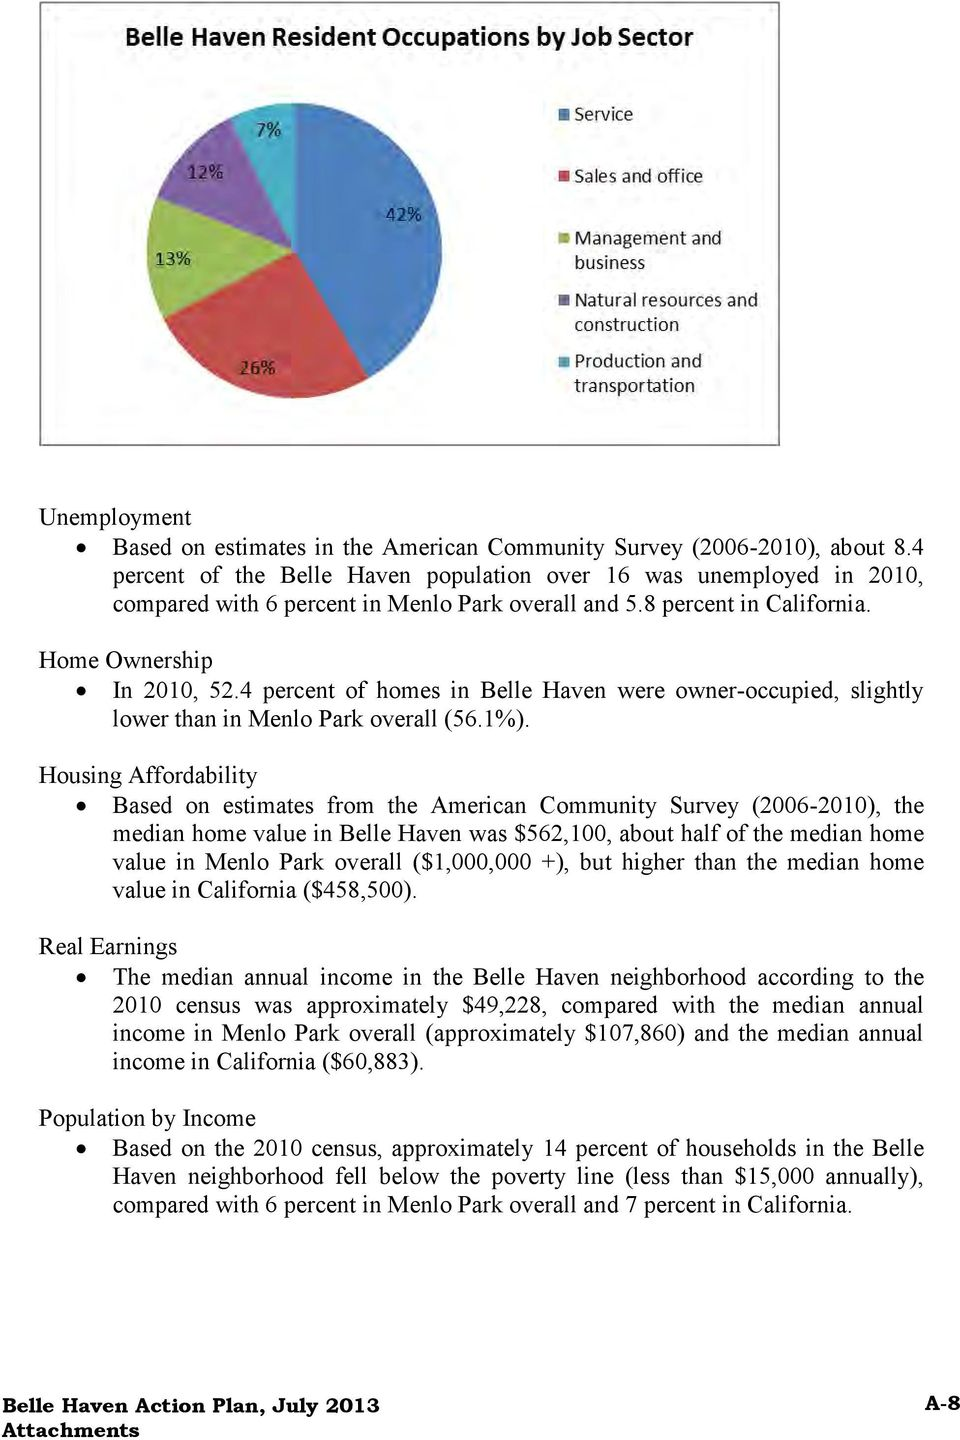 4 percent of homes in Belle Haven were owner-occupied, slightly lower than in Menlo Park overall (56.1%).